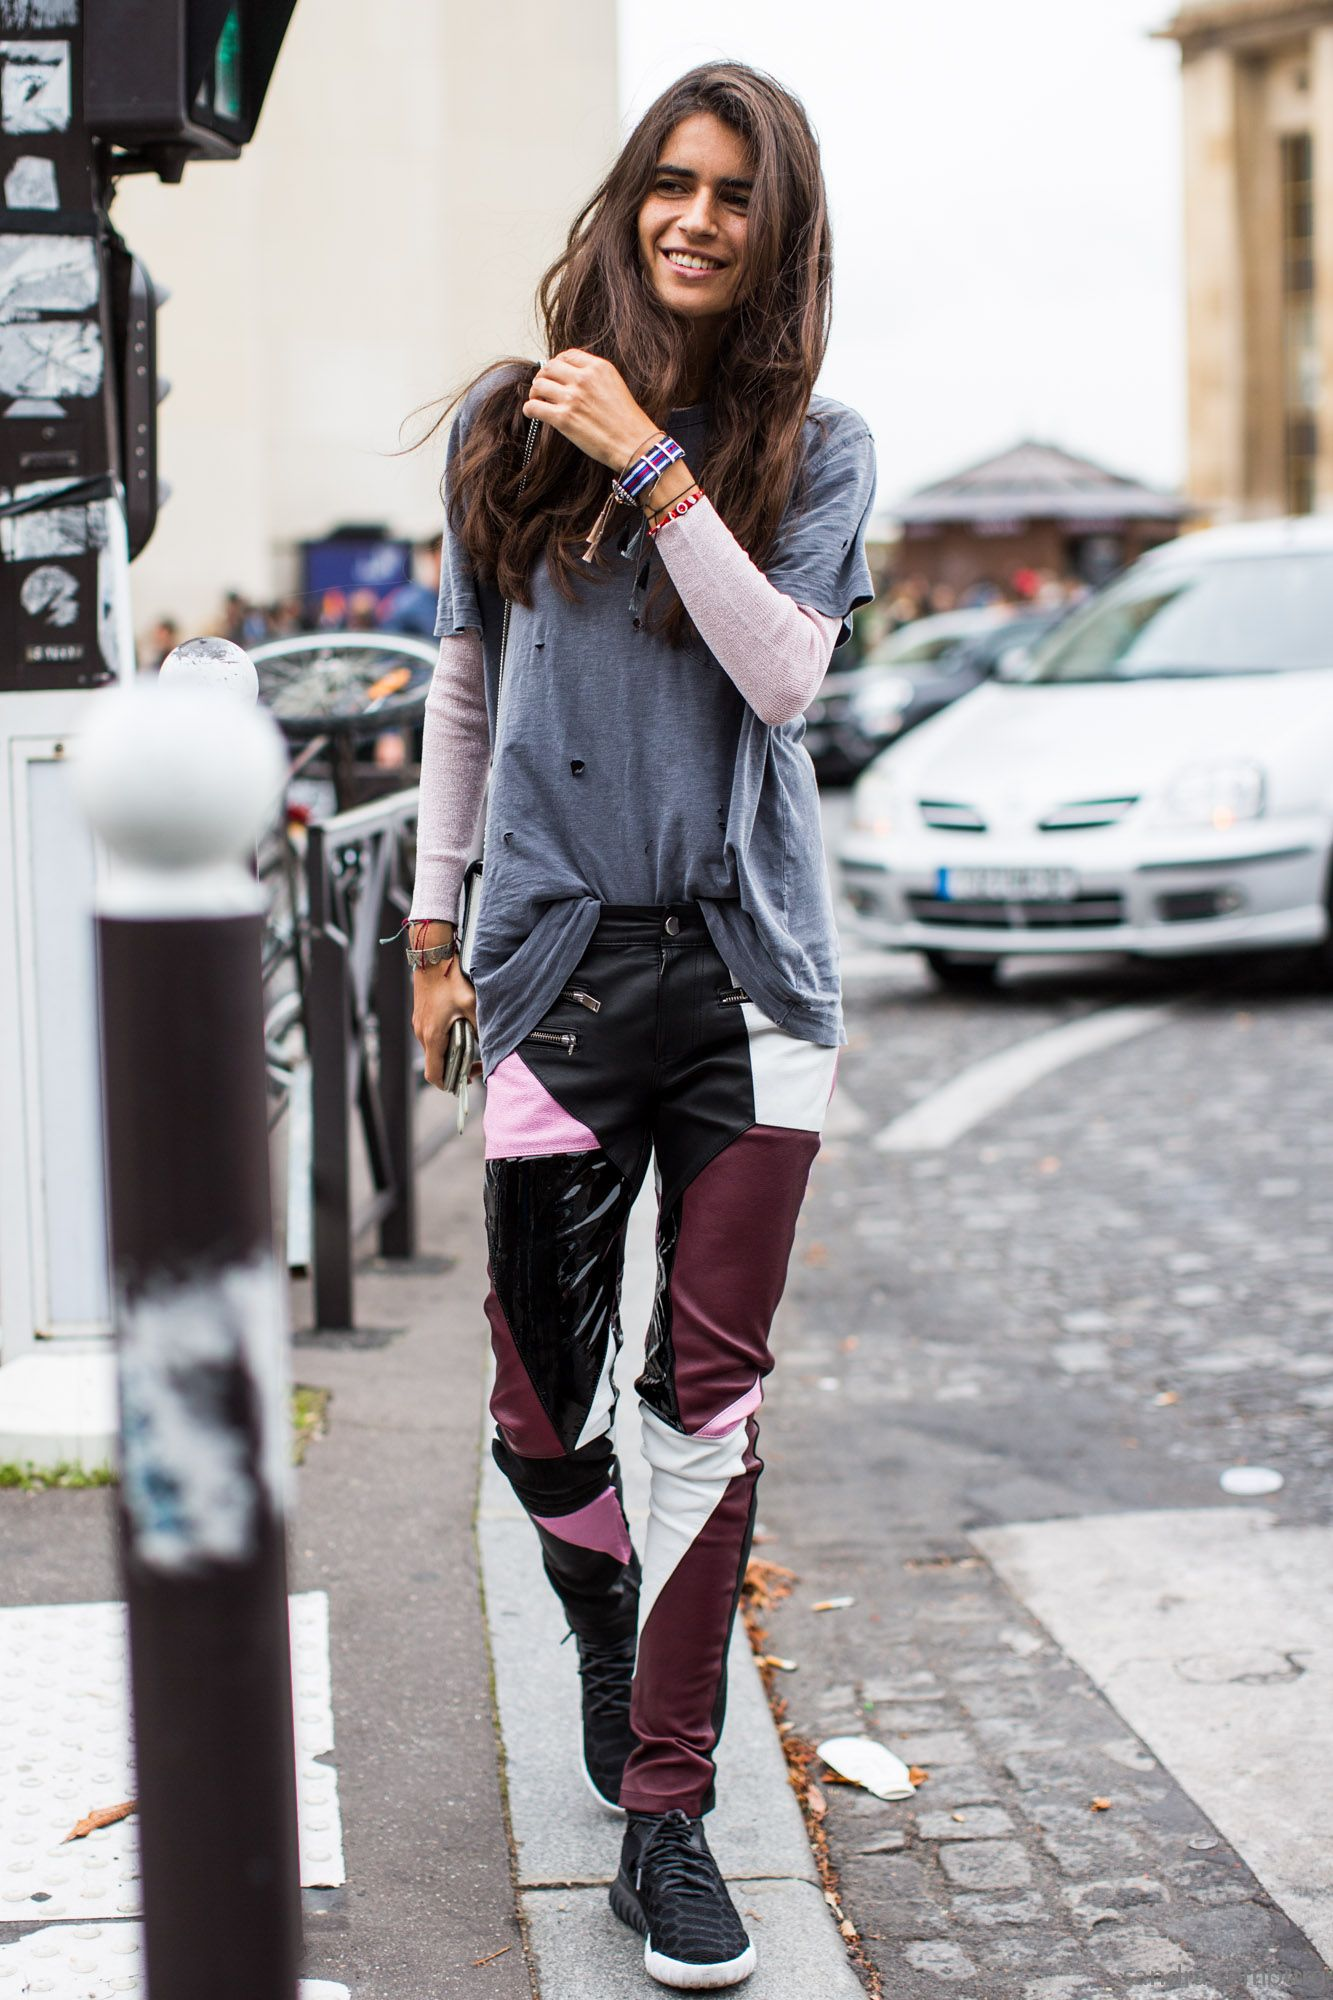 How To Rock Street Chic The Right Way recommend